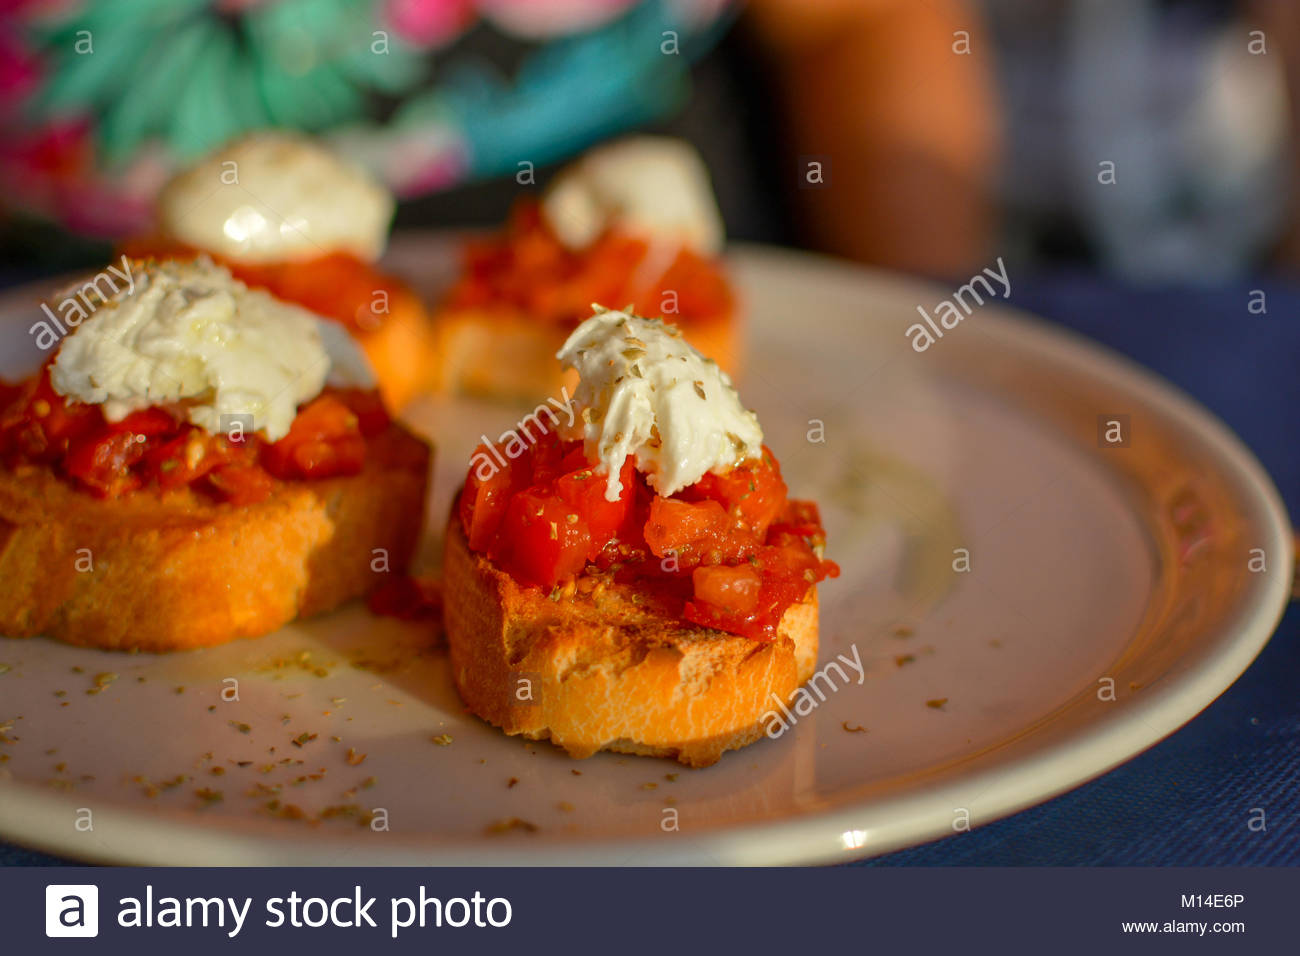 A tasty Italian appetizer of bruschetta on a plate in with tomatoes, basil, cheese and toasted bread - Stock Image